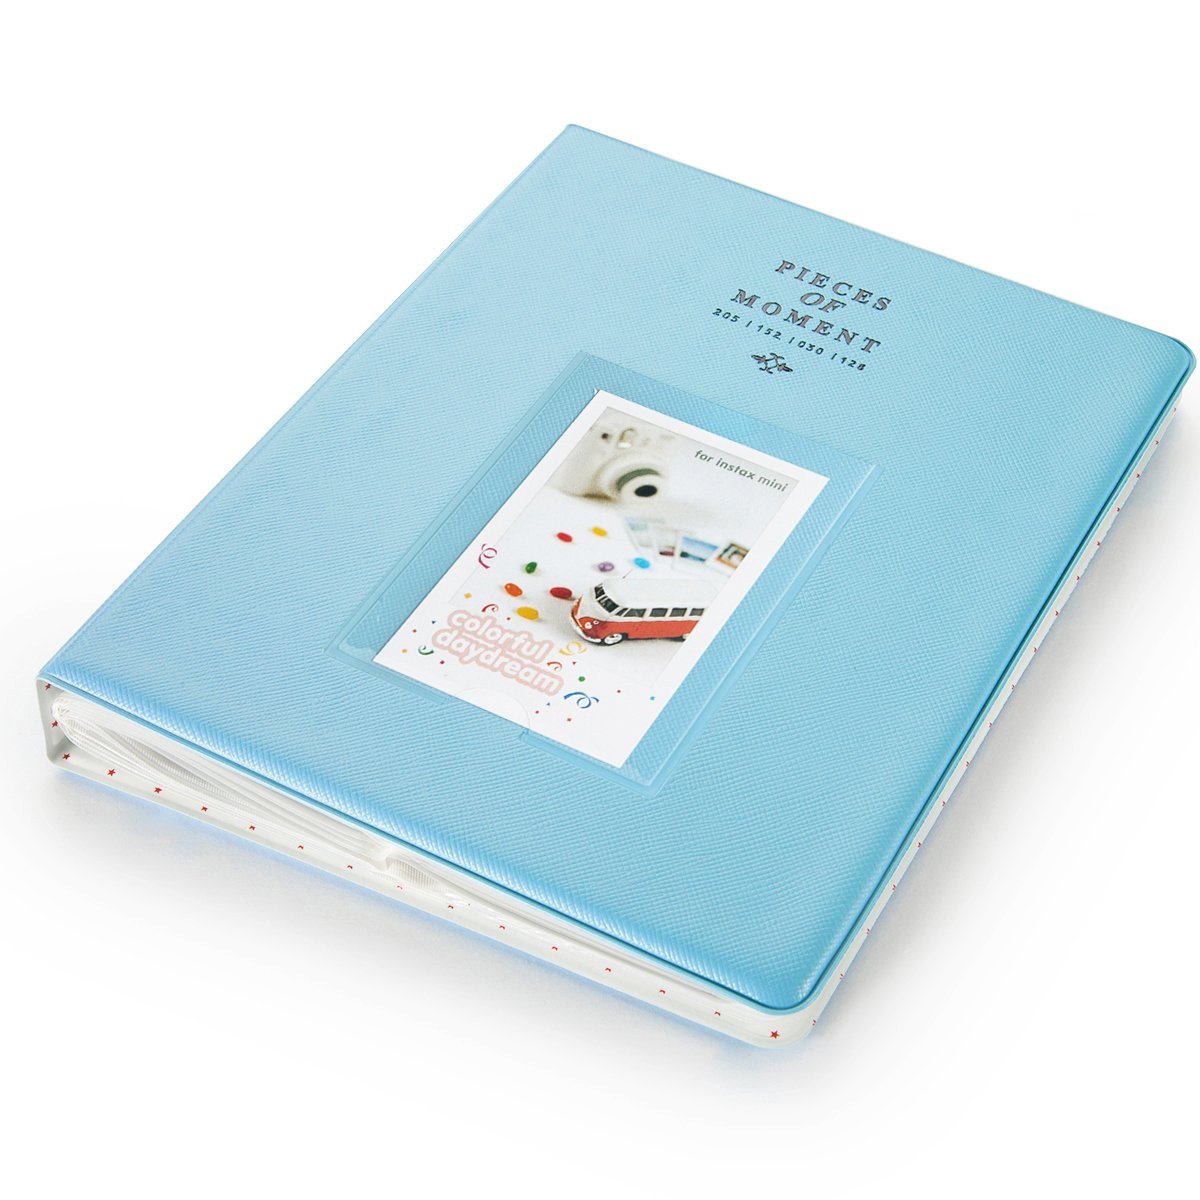 """CAIUL 128 Pockets  Album for  Instax Mini 7s 8 8+ 9 25 26 50s 70 90 Film, Polaroid PIC300 Z2300 Film (Blue) """